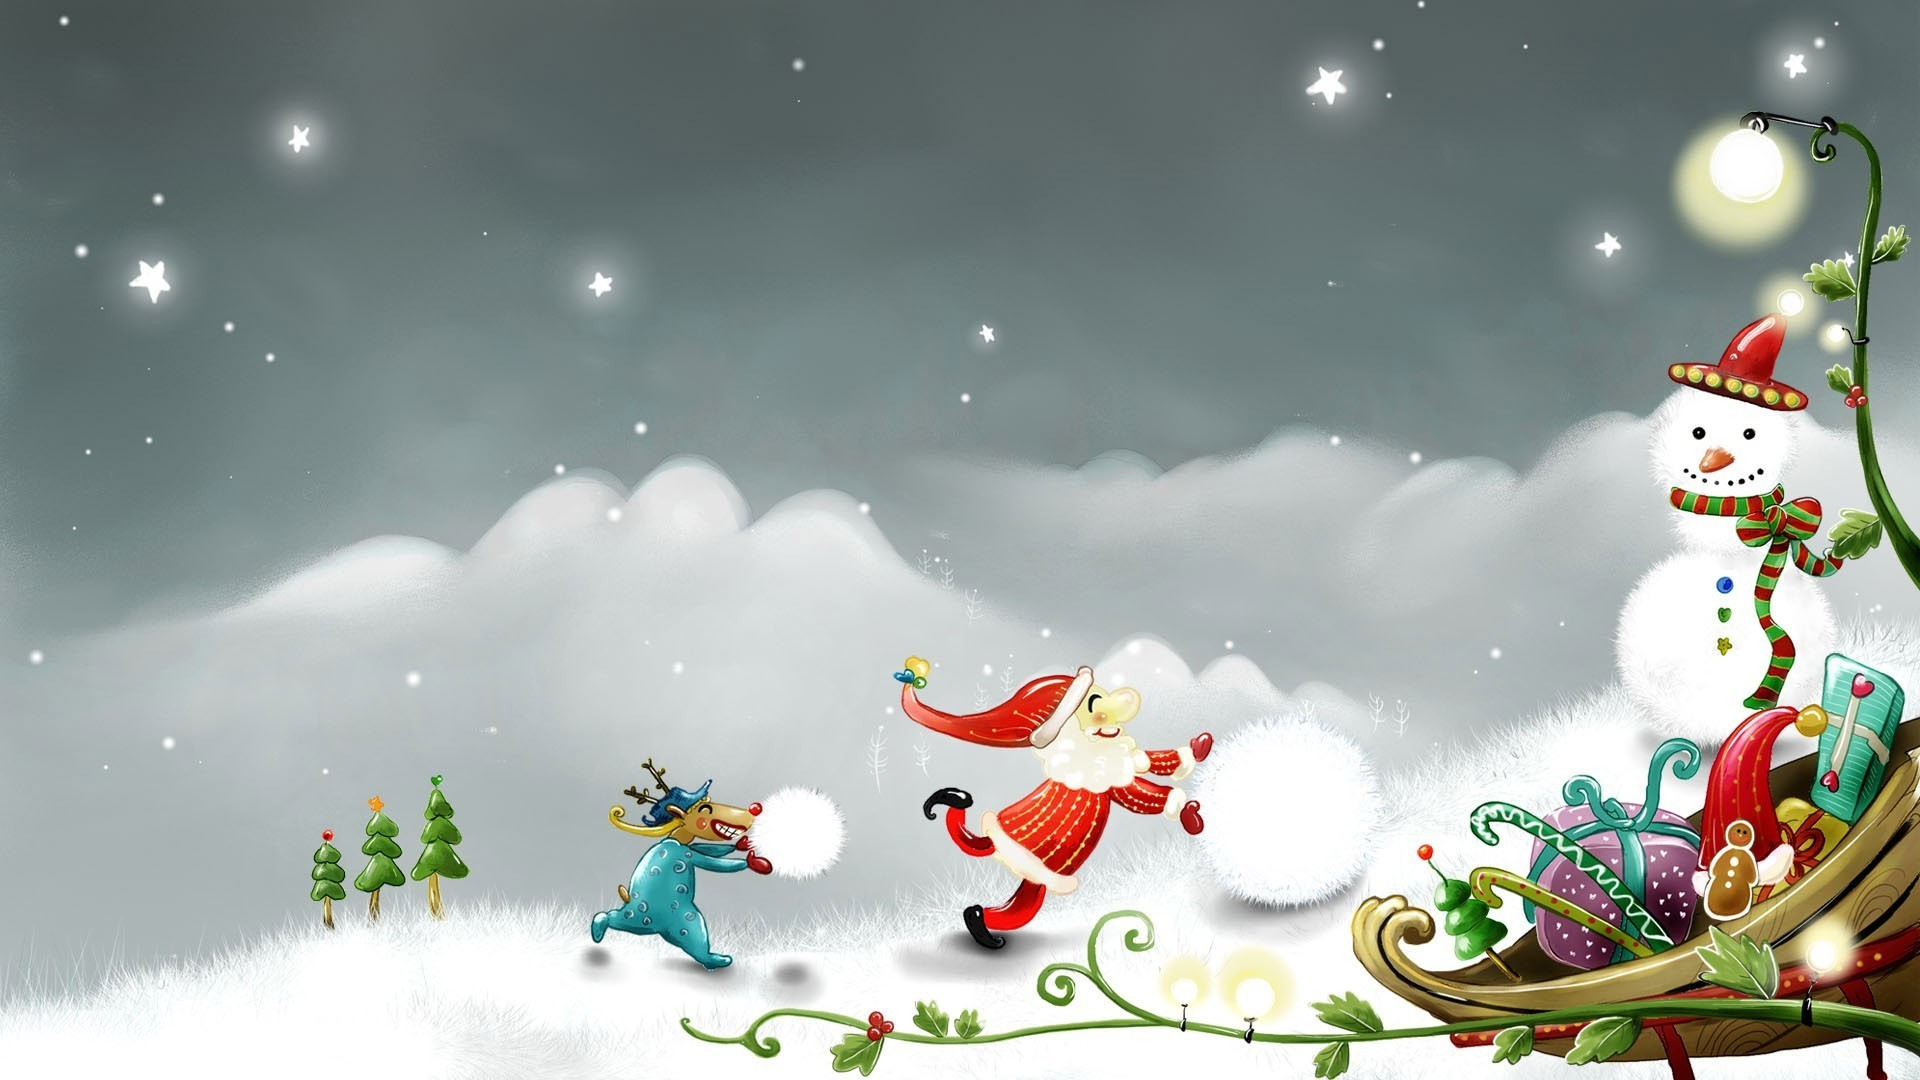 Res: 1920x1080, Photos In High Quality - Rudolph by Ludmilla Bullier